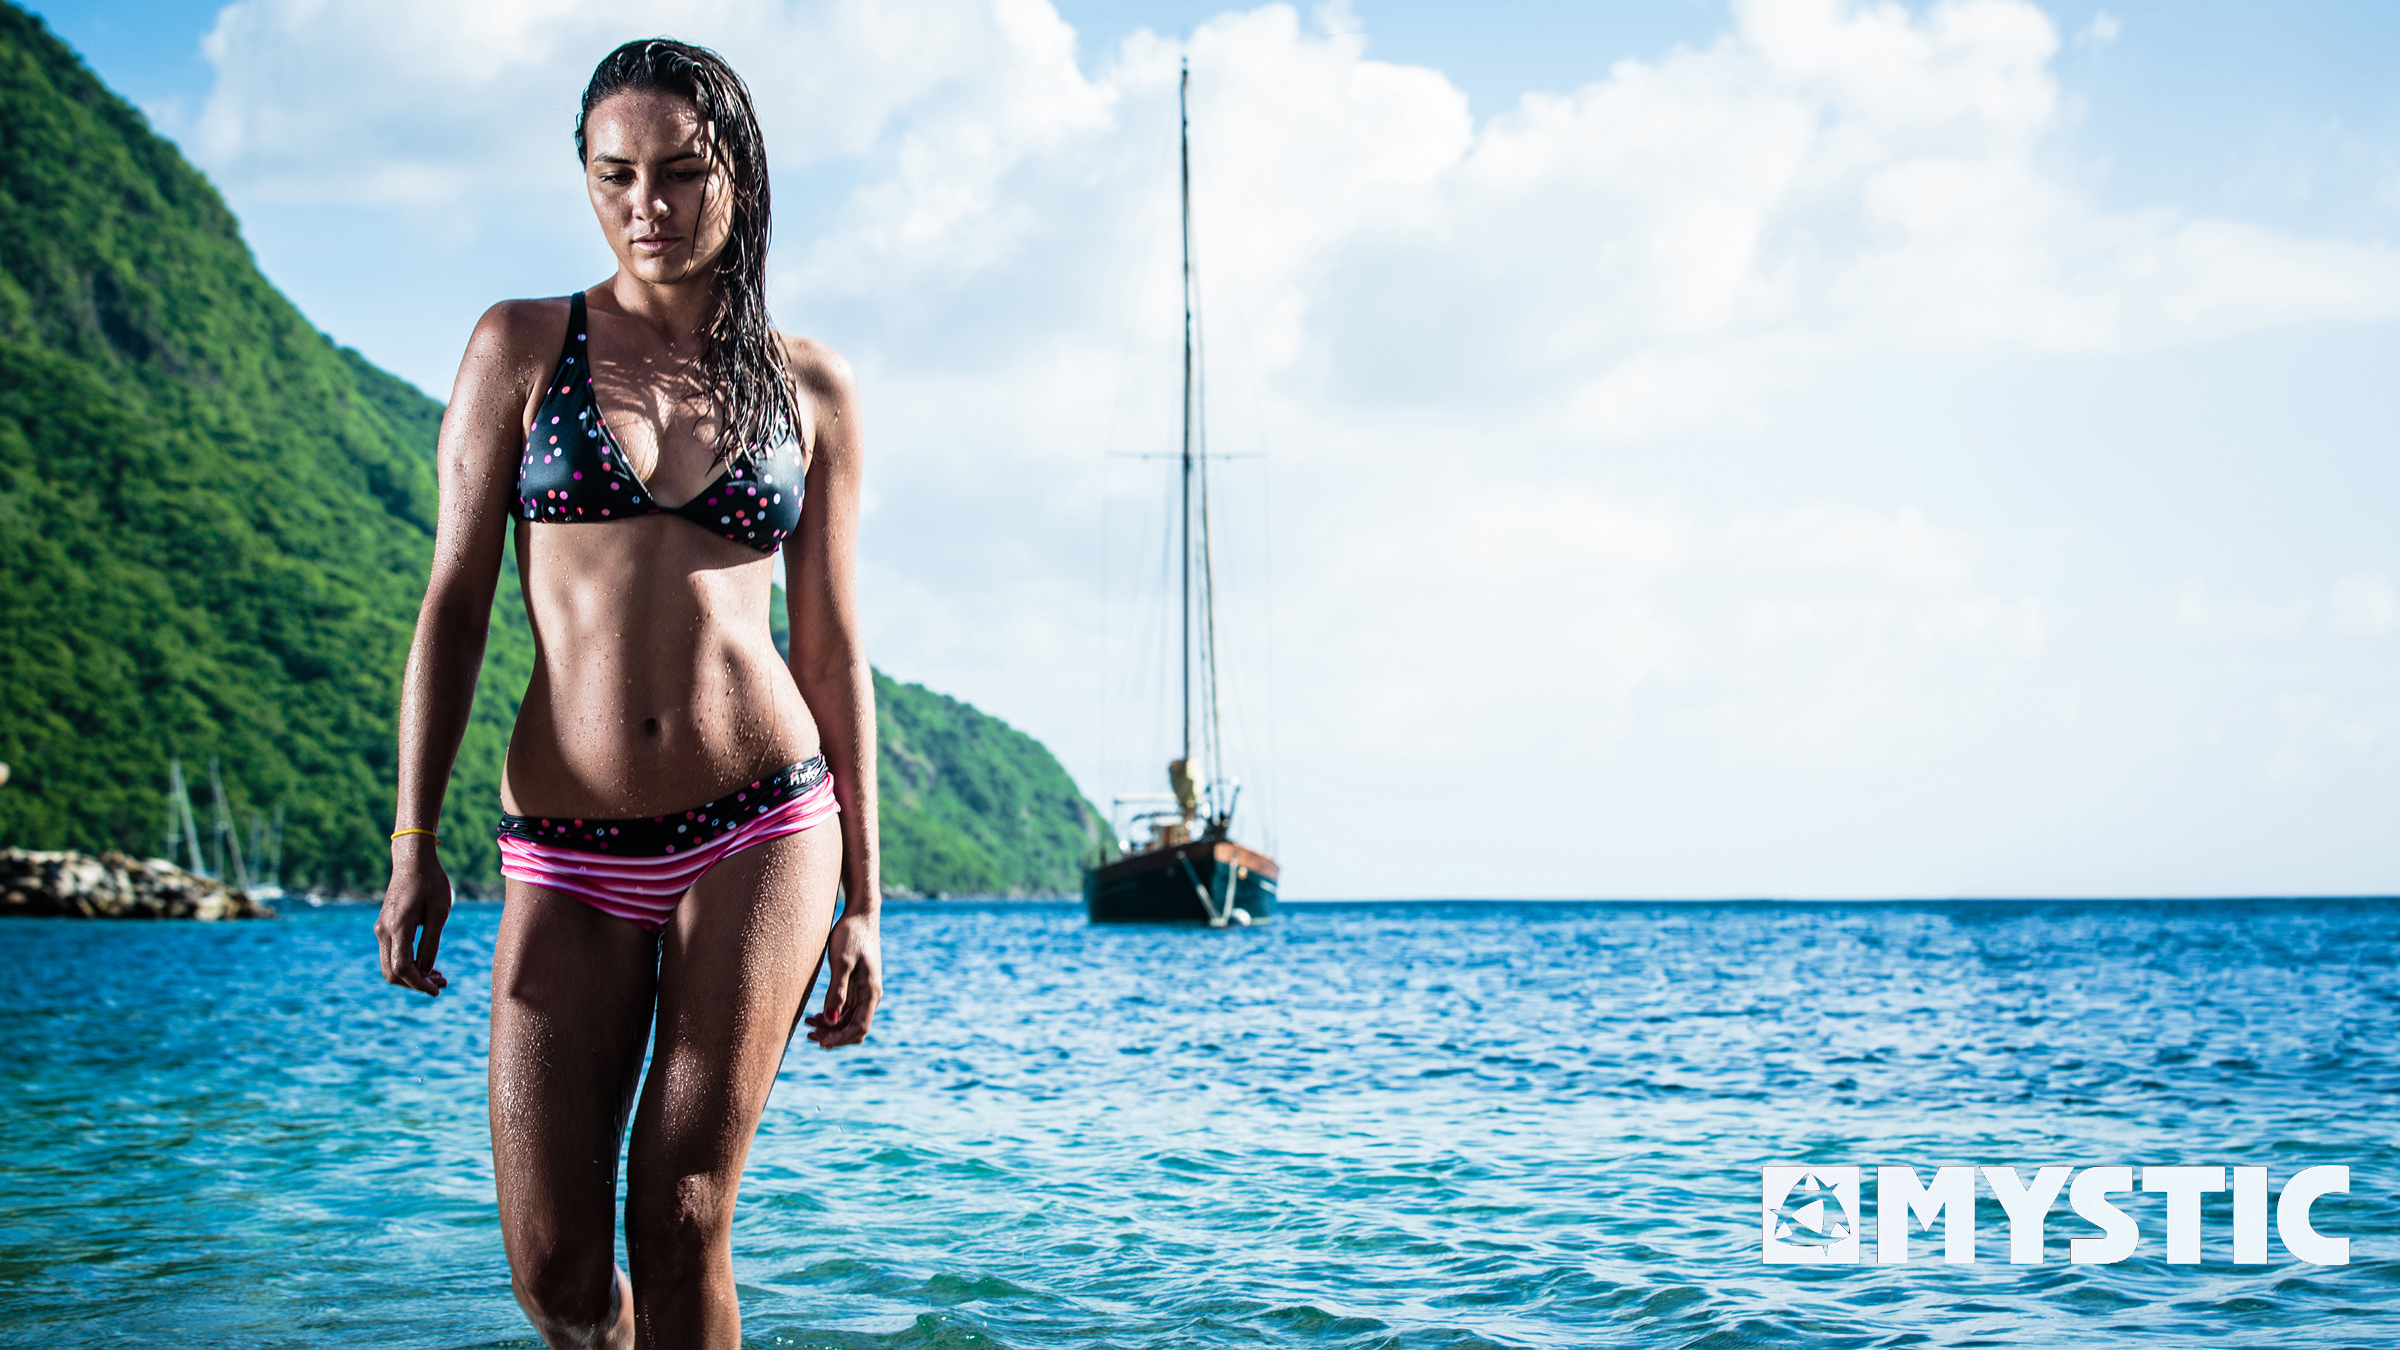 kitesurf wallpaper image - Bruna Kajiya showing off an excellent bikini after a day in the surf. - in resolution: High Definition - HD 16:9 2400 X 1350